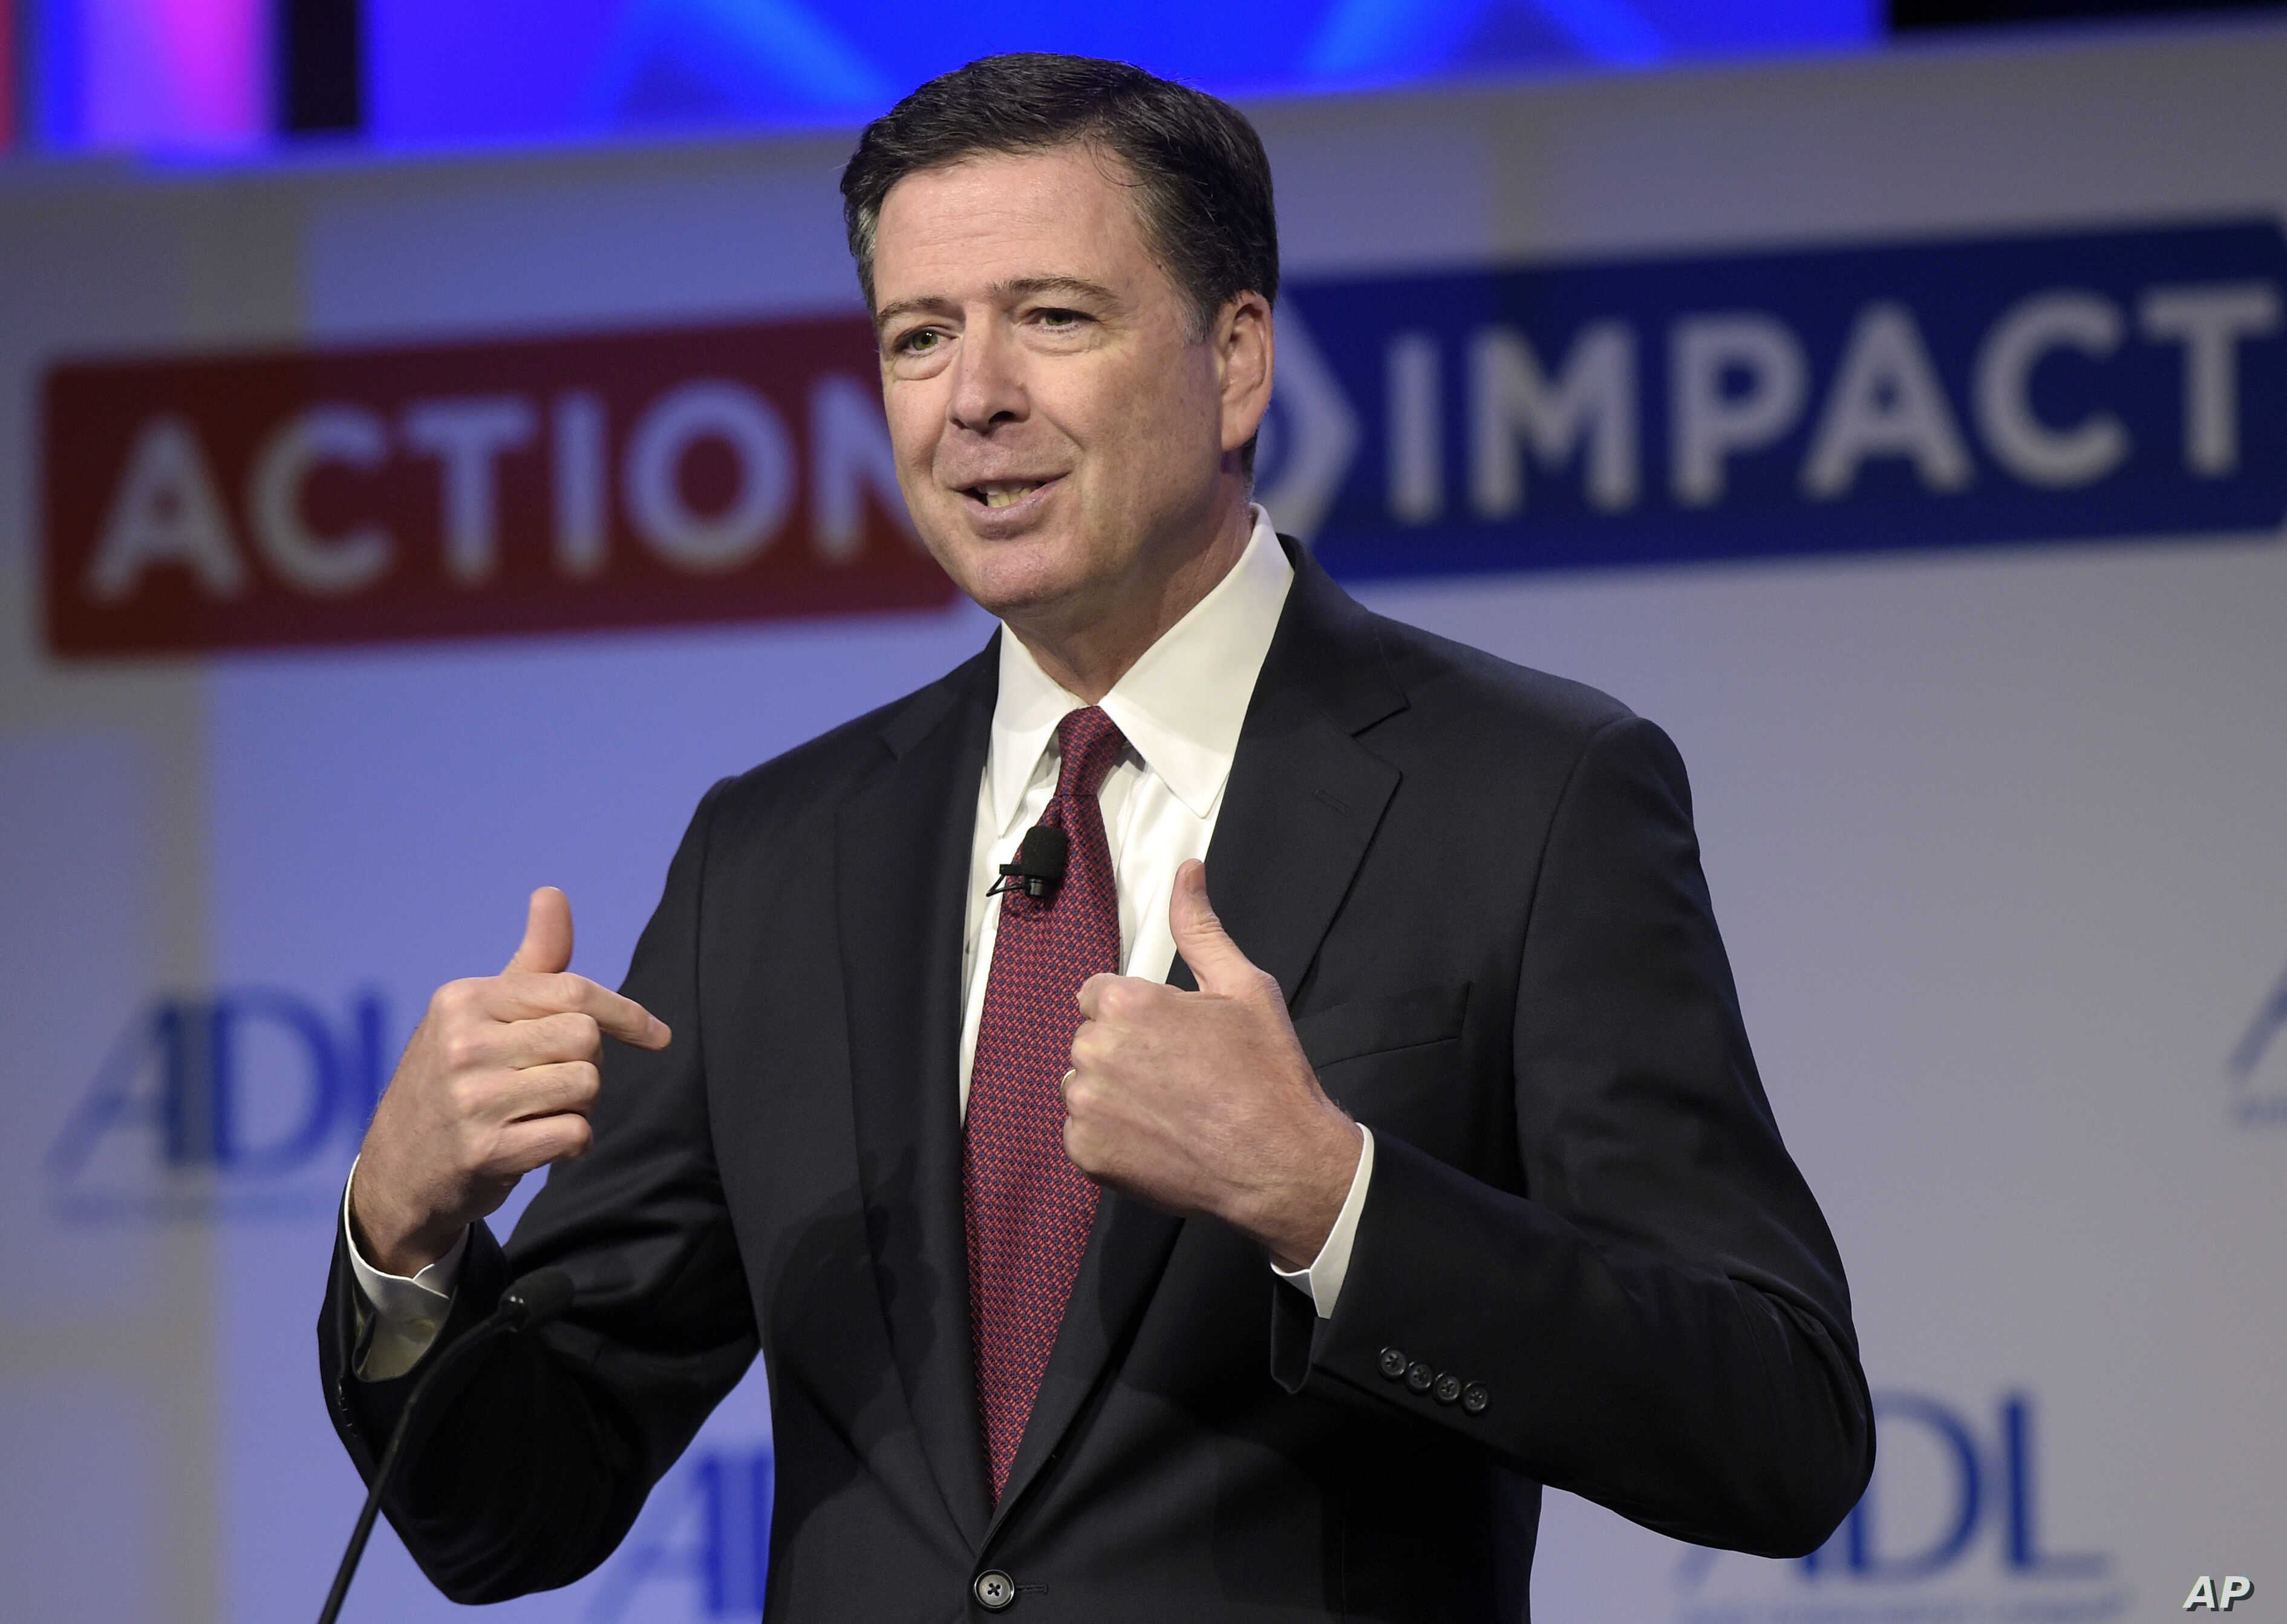 In this May 8, 2017, photo, then-FBI Director James Comey speaks to the Anti-Defamation League National Leadership Summit in Washington.